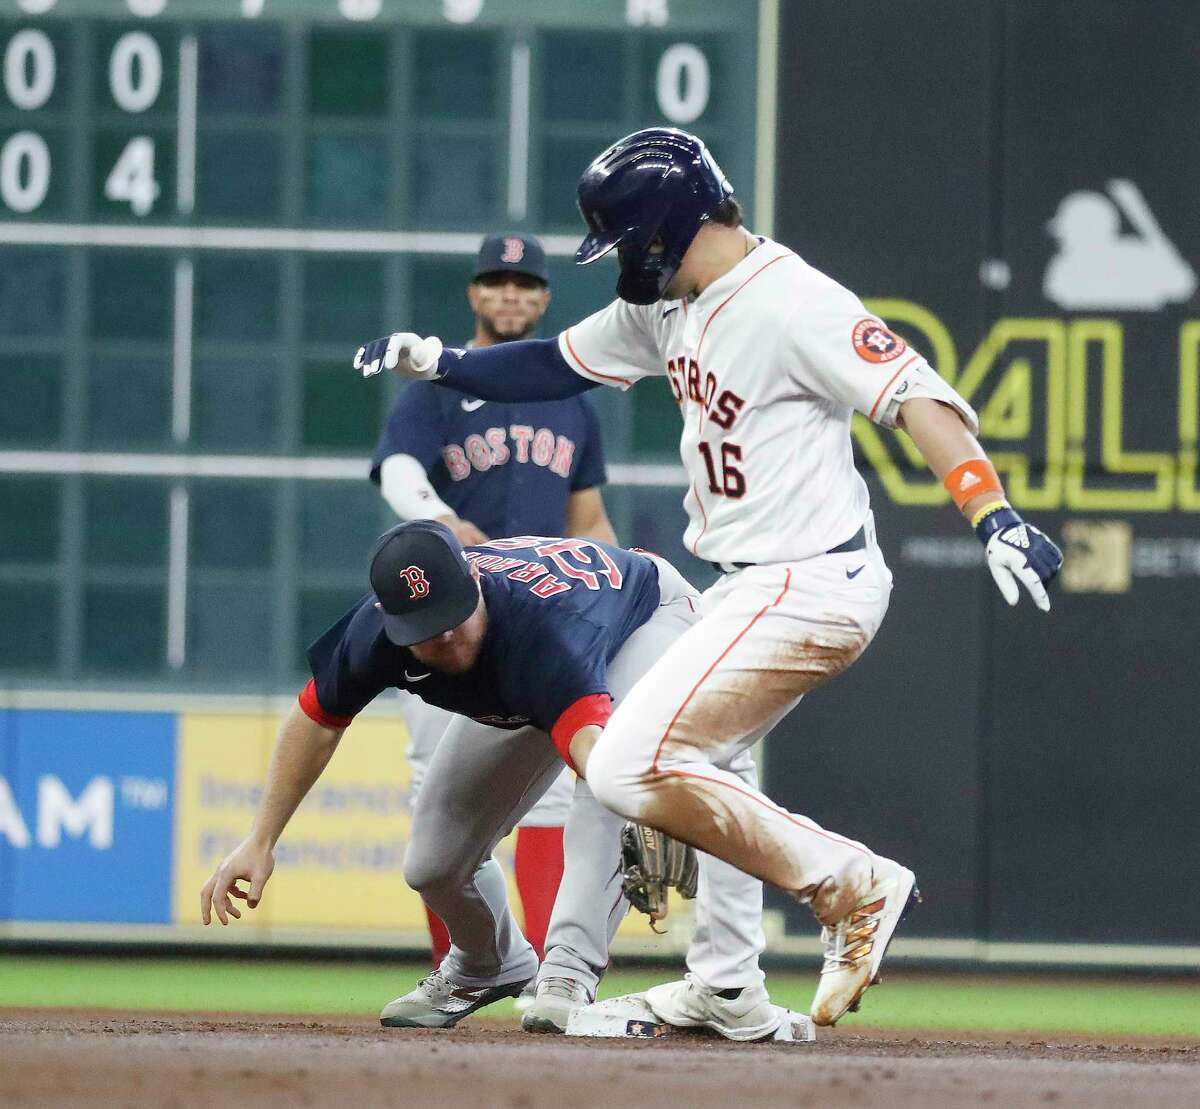 Houston Astros Aledmys Diaz (16) slides into second base against Boston Red Sox second baseman Christian Arroyo (39) after he doubled off of Boston Red Sox starting pitcher Martin Perez during the first inning of an MLB baseball game at Minute Maid Park, Thursday, June 3, 2021, in Houston.